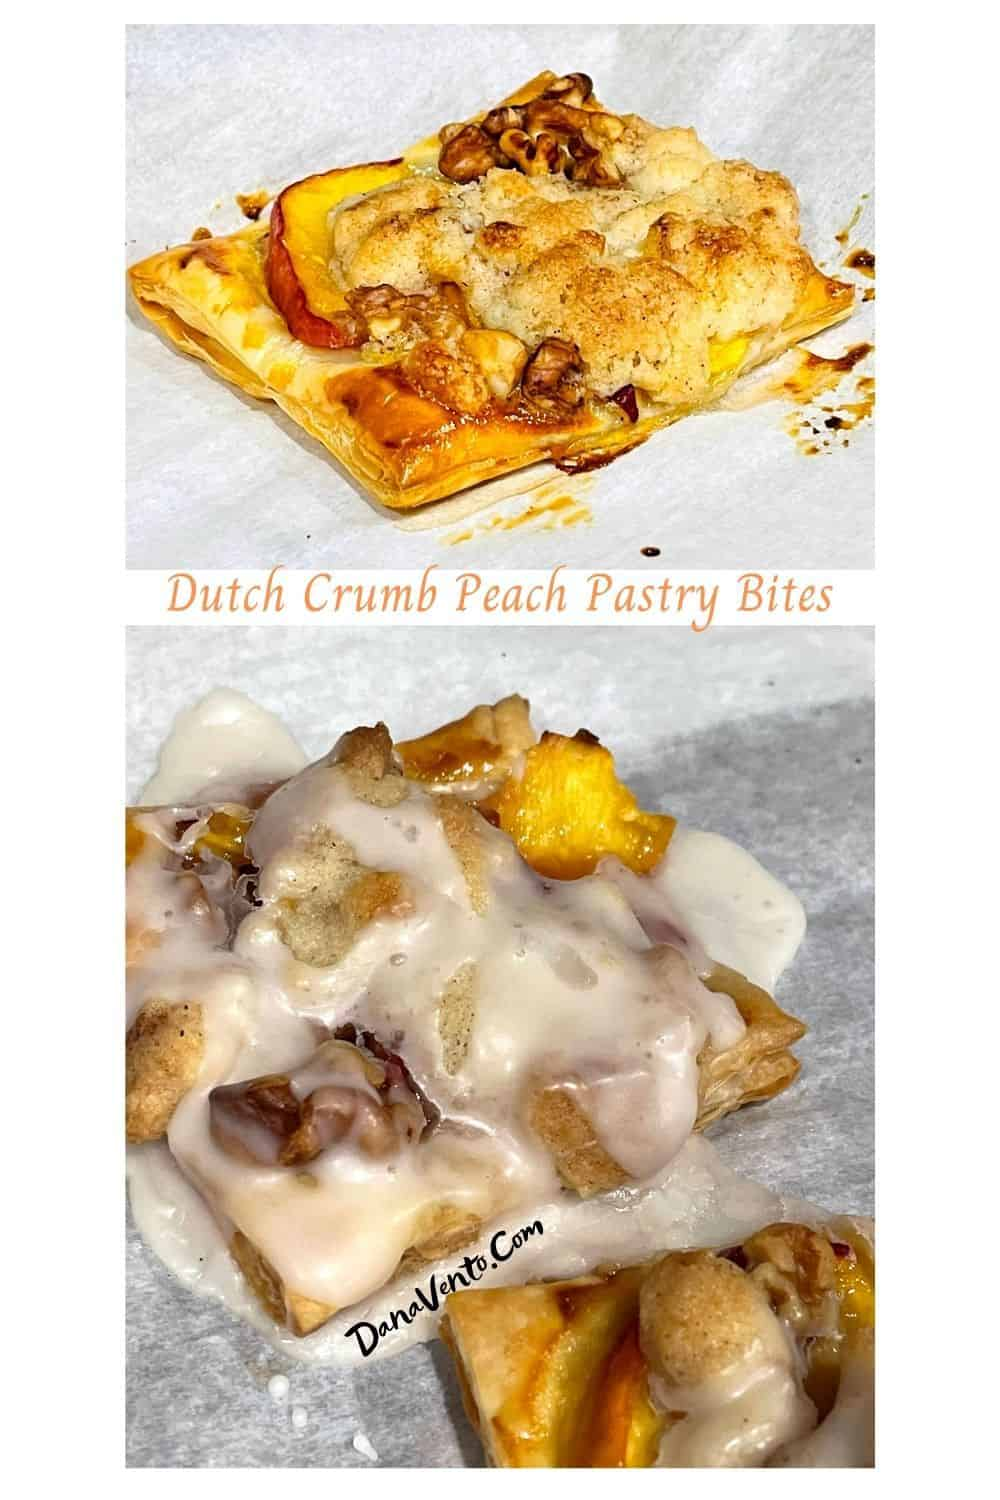 Dutch Crumb Peach Pastry Bites naked and iced